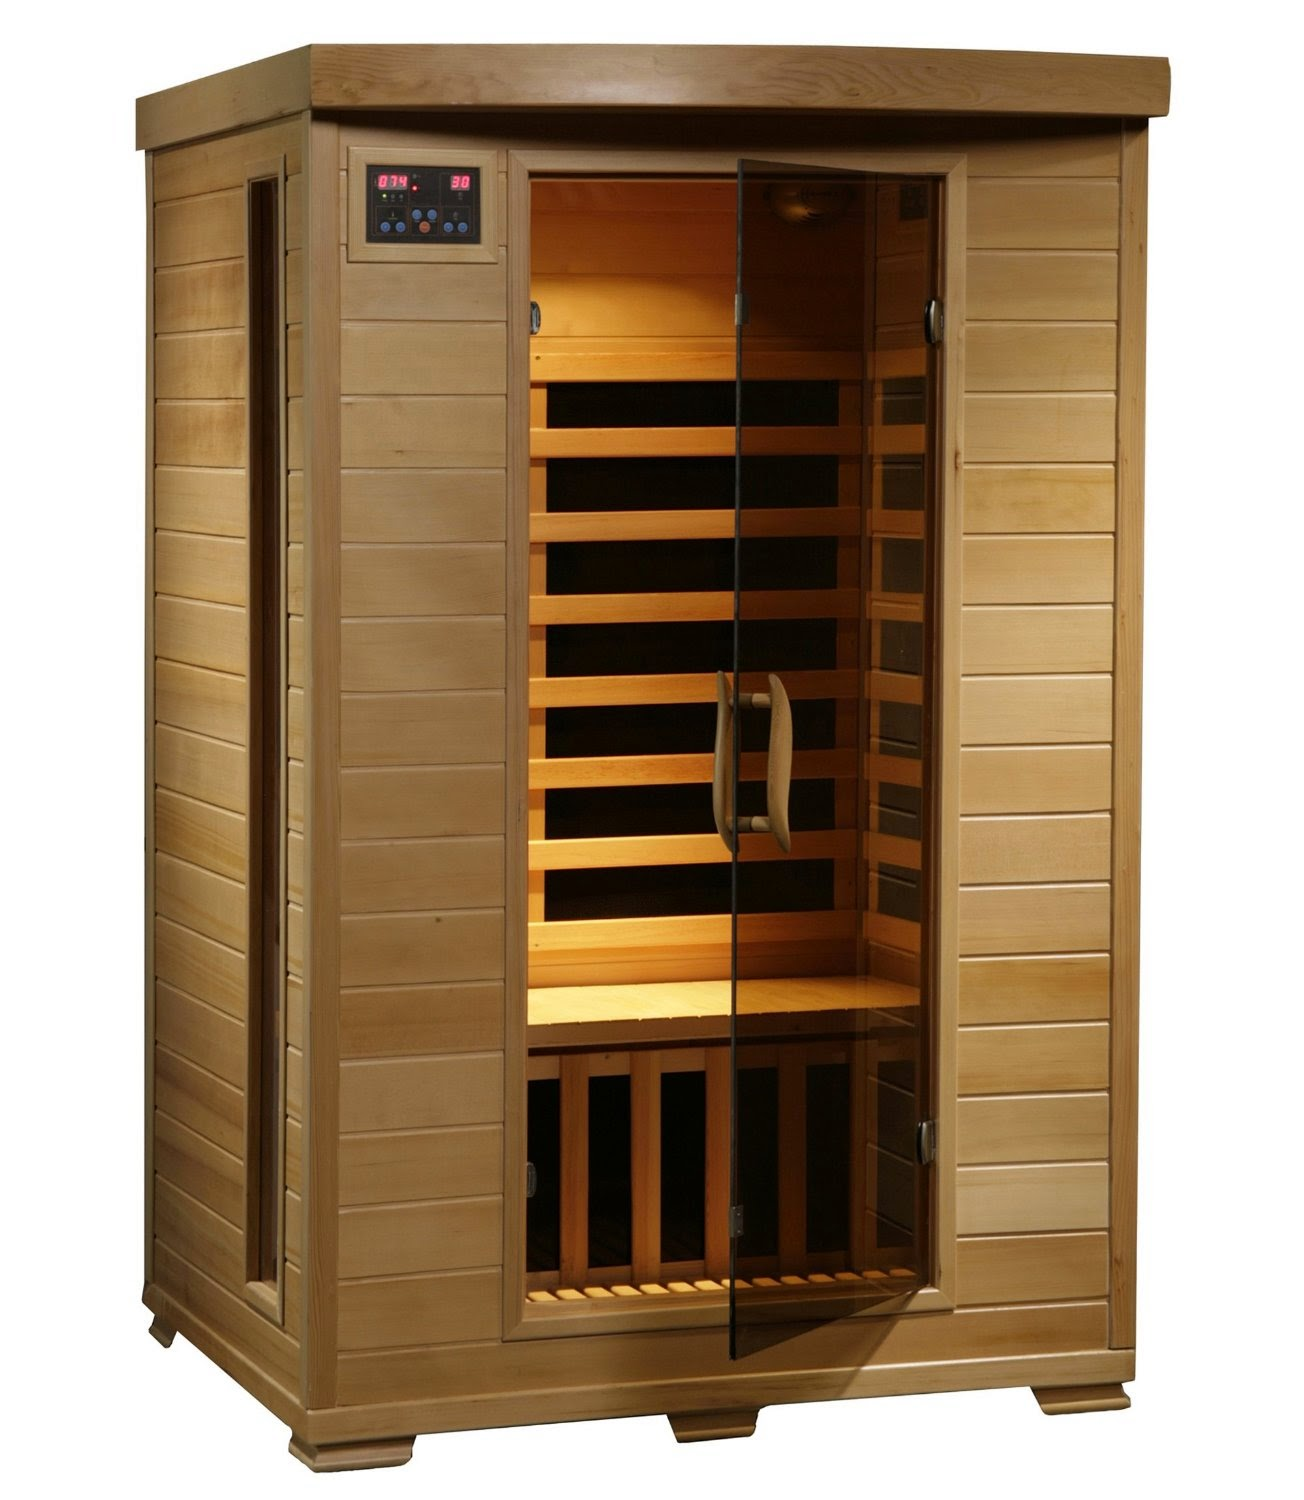 Radiant Saunas BSA2409 2 Person Hemlock Infrared Sauna with 6 Carbon Heaters, health benefits of saunas